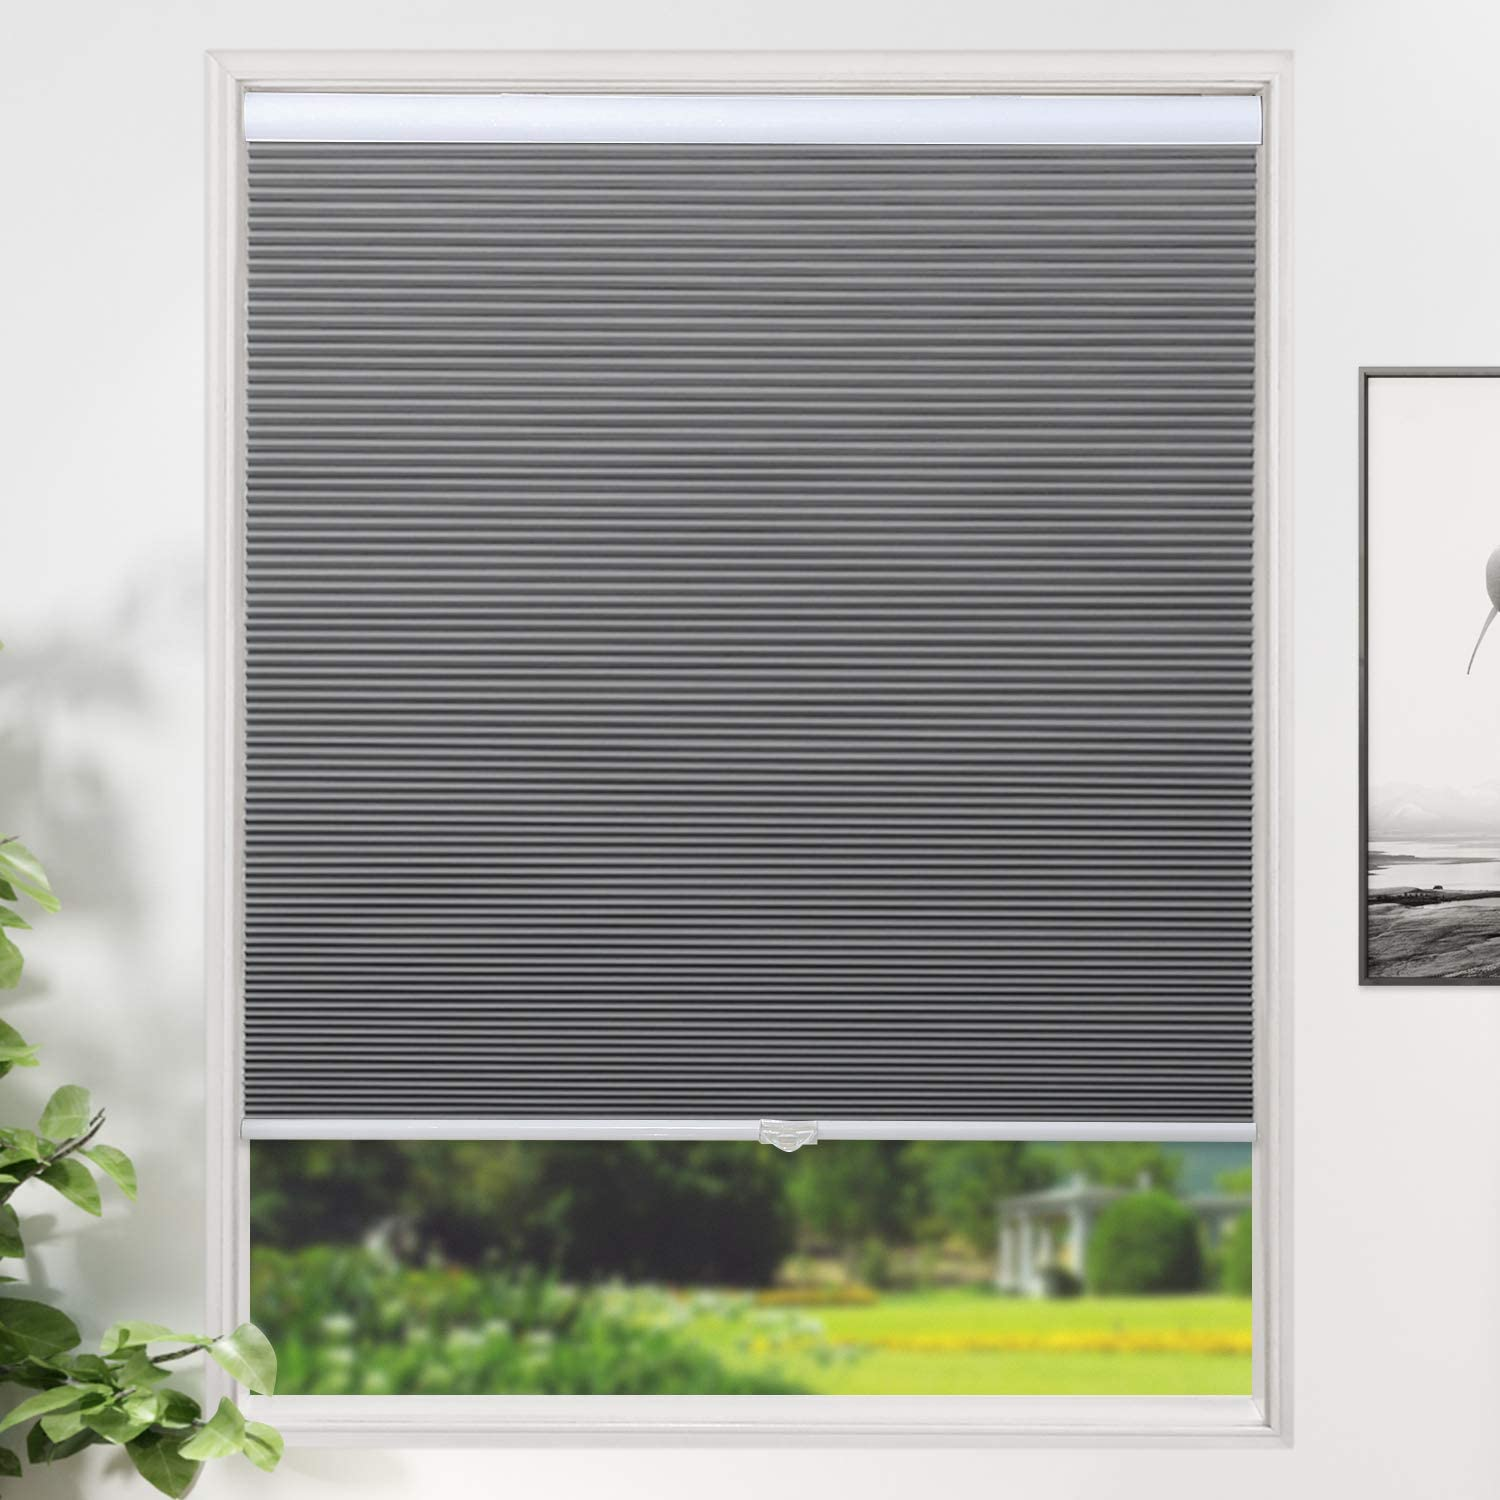 SUNFREE Cellular Shades Blackout Blinds Cordless Honeycomb Window Shades for Bedroom, Blinds for Window and Door, Home and Office, Grey, 24